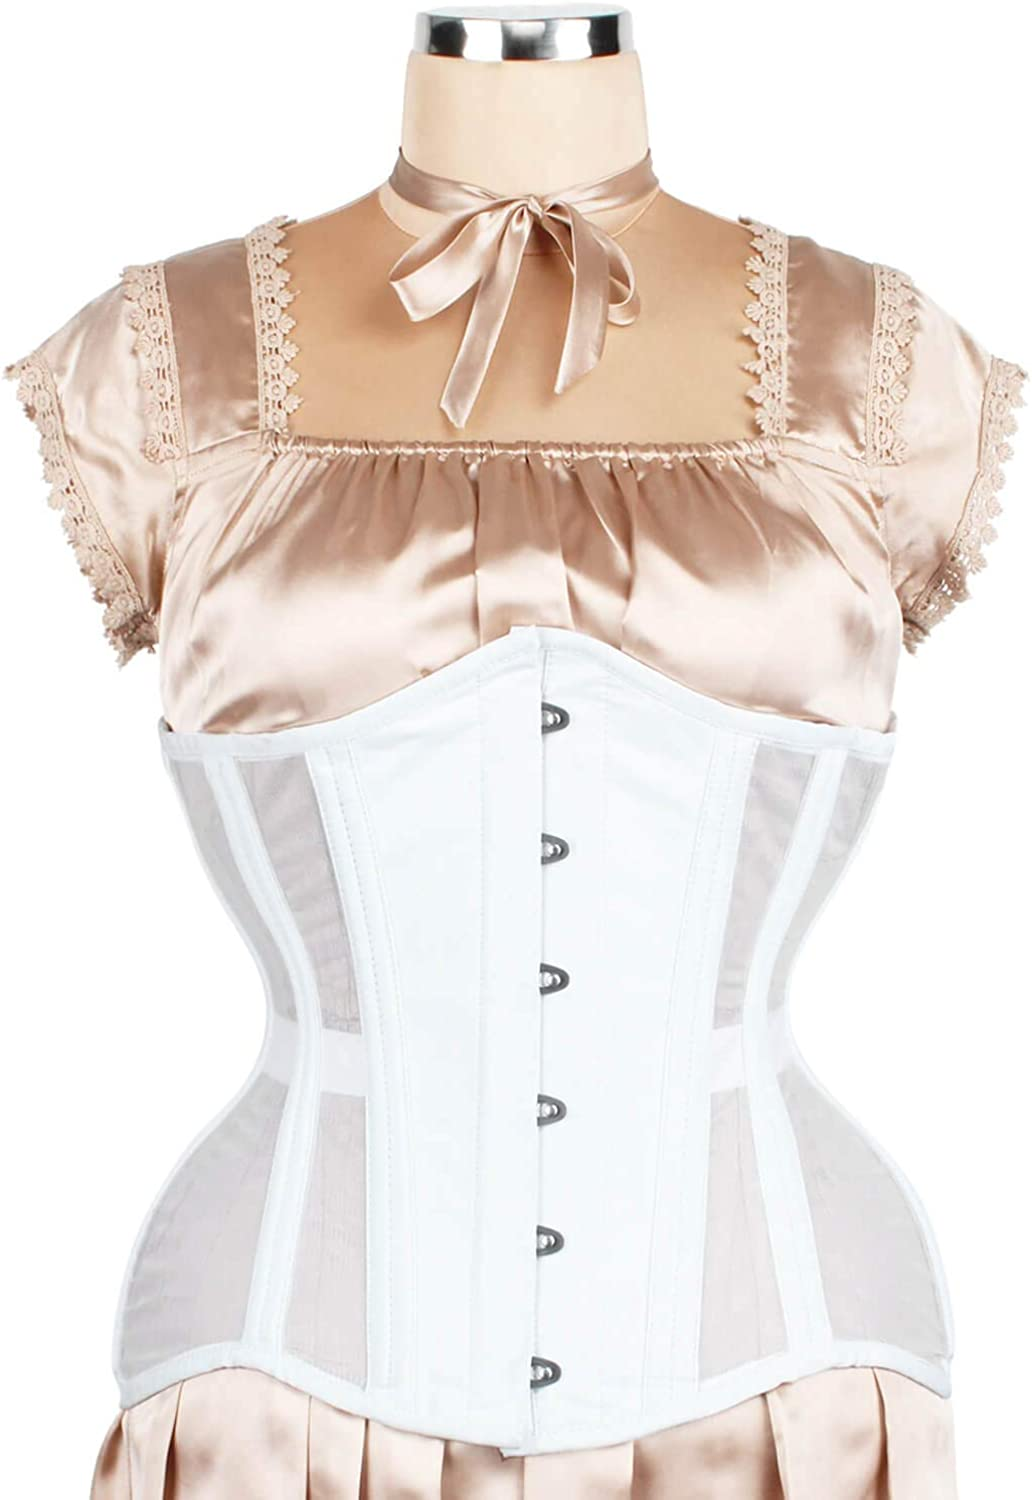 Elyzza London Steel Boned Mesh with Cotton Waist Training Corset